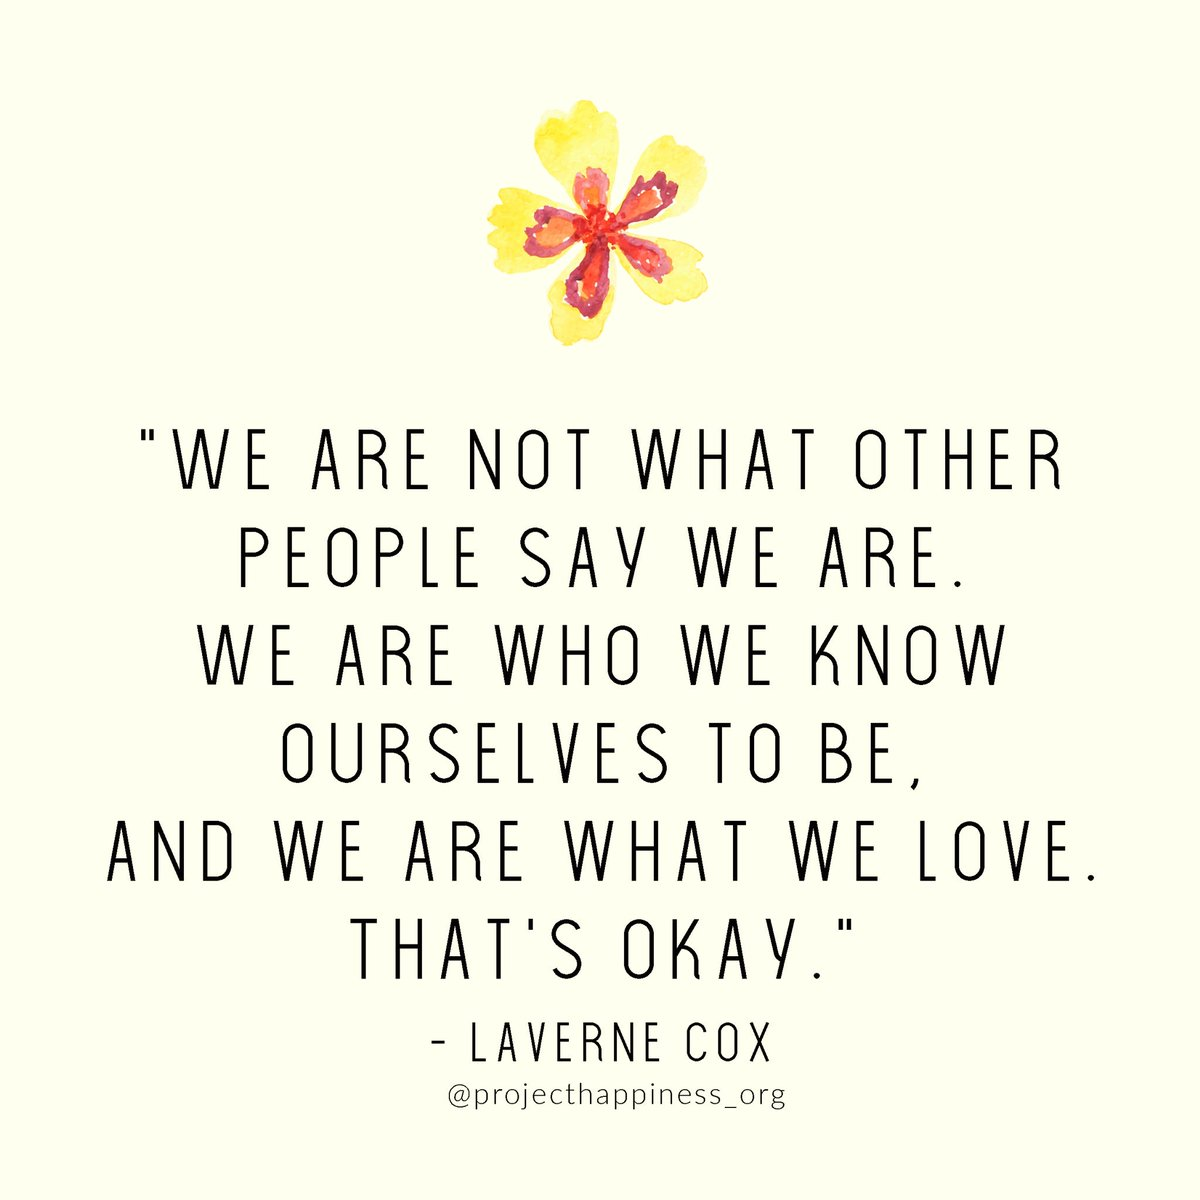 You are who you know yourself to be. Being vulnerable and showing the world who you are takes courage. It is also in this process where you find connection. You know your truth. In stillness, your true self guides you. Let it free today.  #projecthappiness @Lavernecox <br>http://pic.twitter.com/7rx0XyjMYq